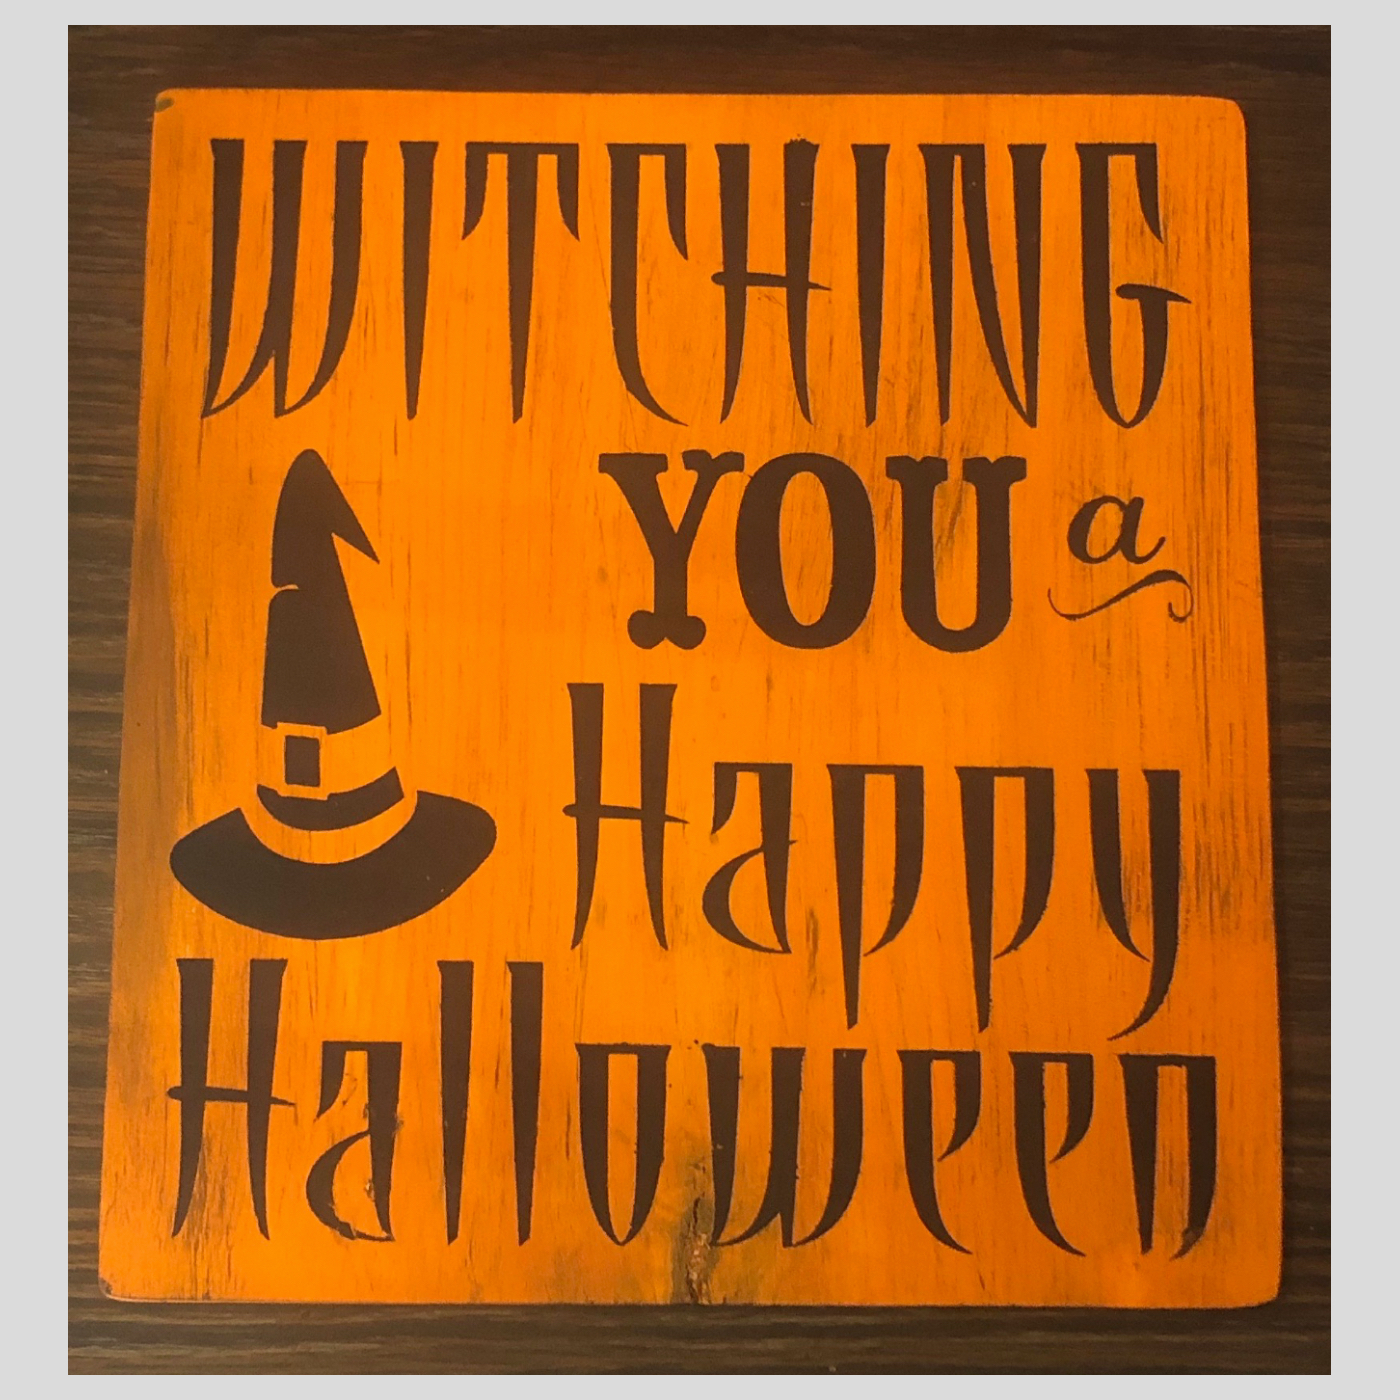 Witching You a Happy Halloween DIY Wood Sign Bethlehem PA